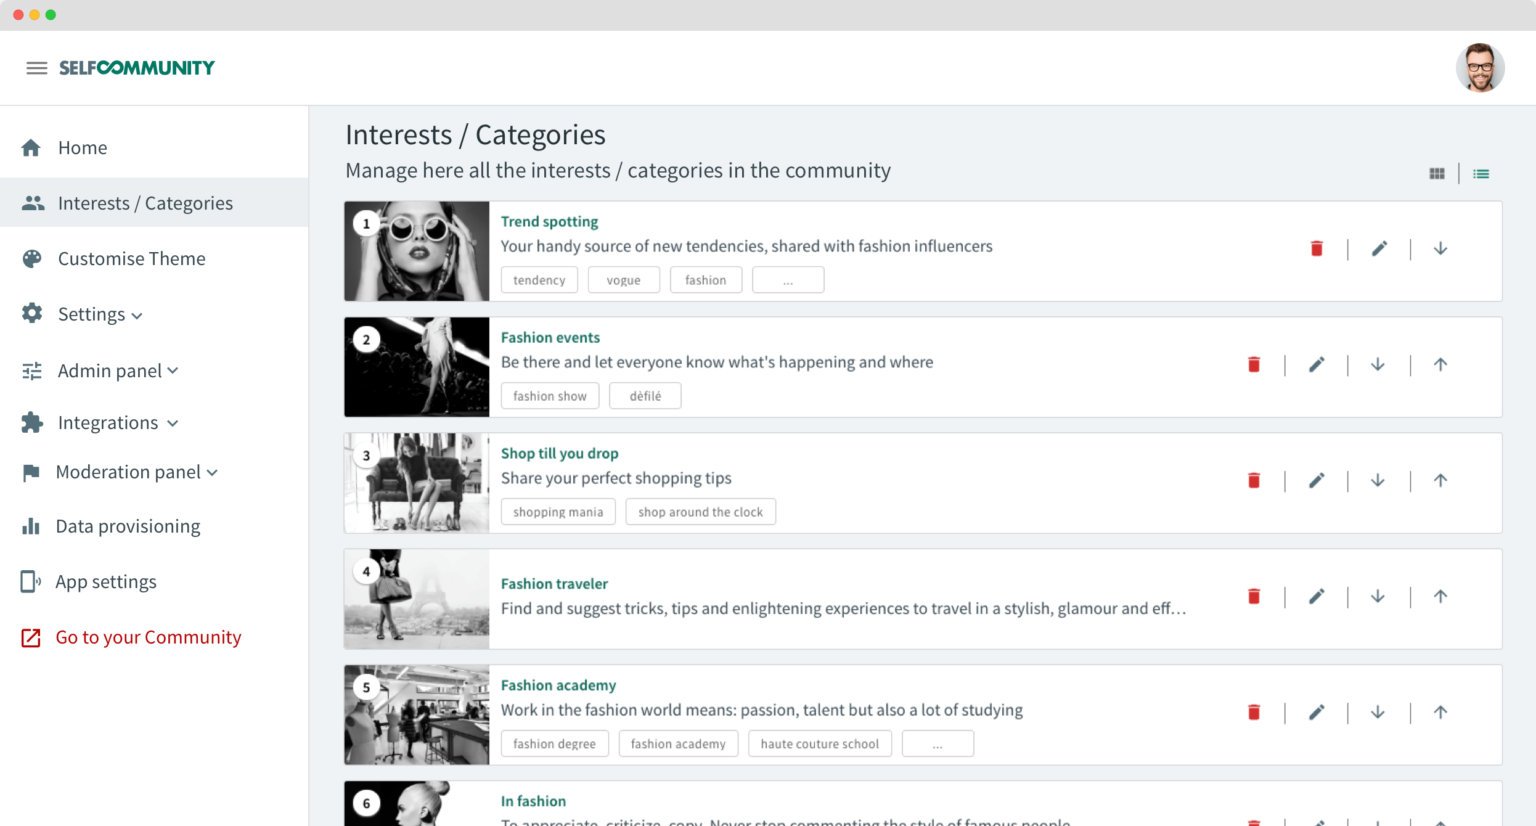 SelfCommunity user interests and categories